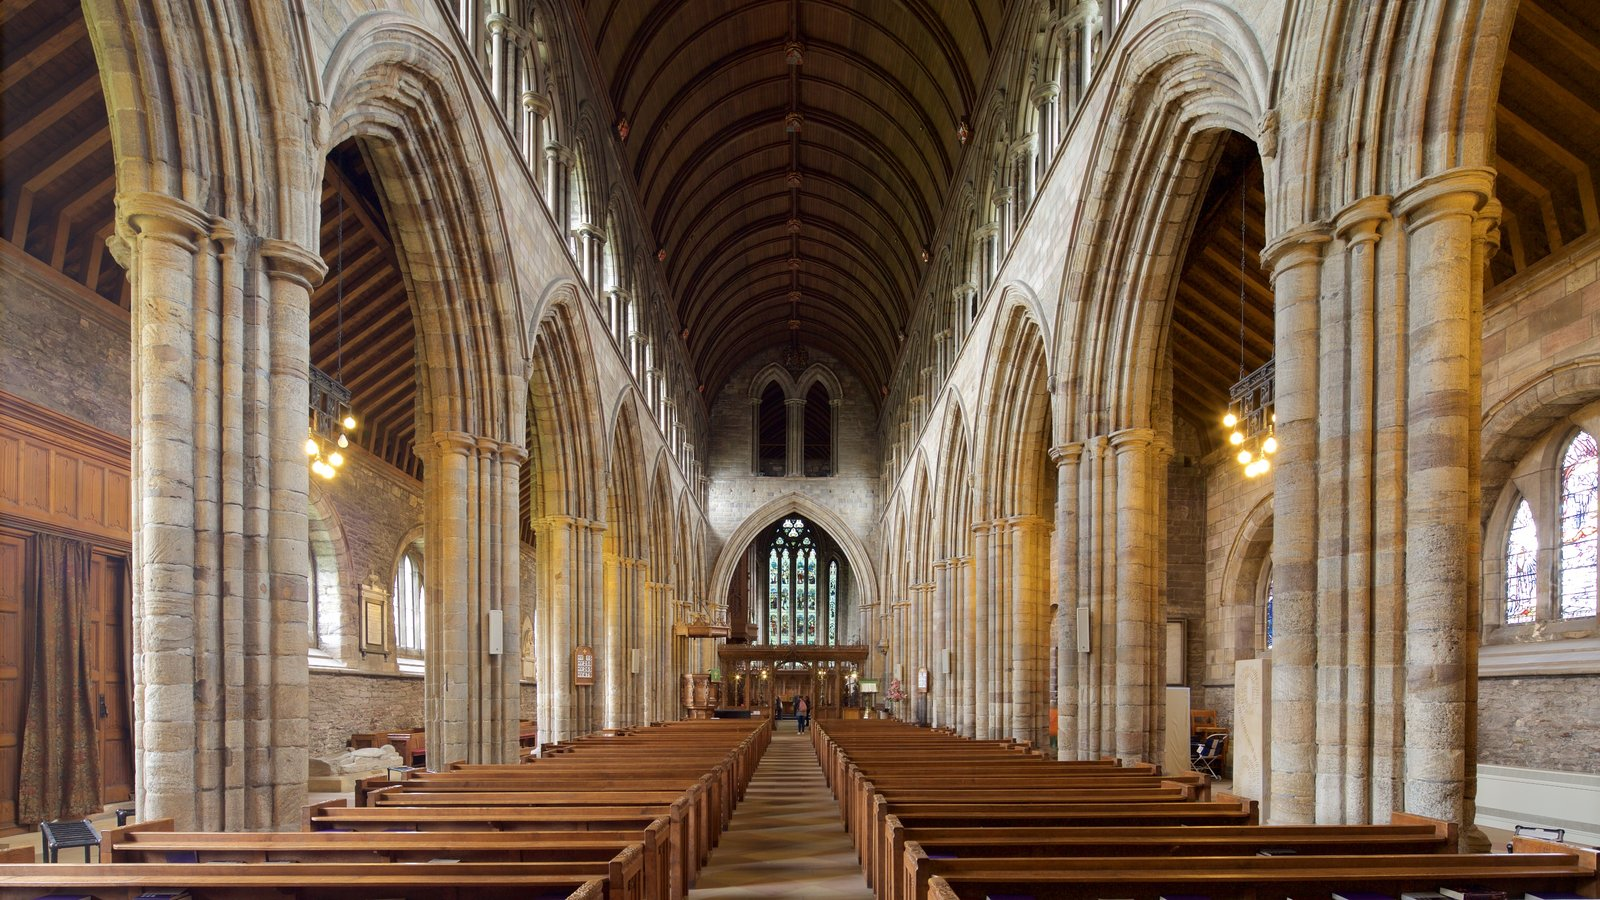 Dunblane Cathedral which includes religious aspects, interior views and a church or cathedral